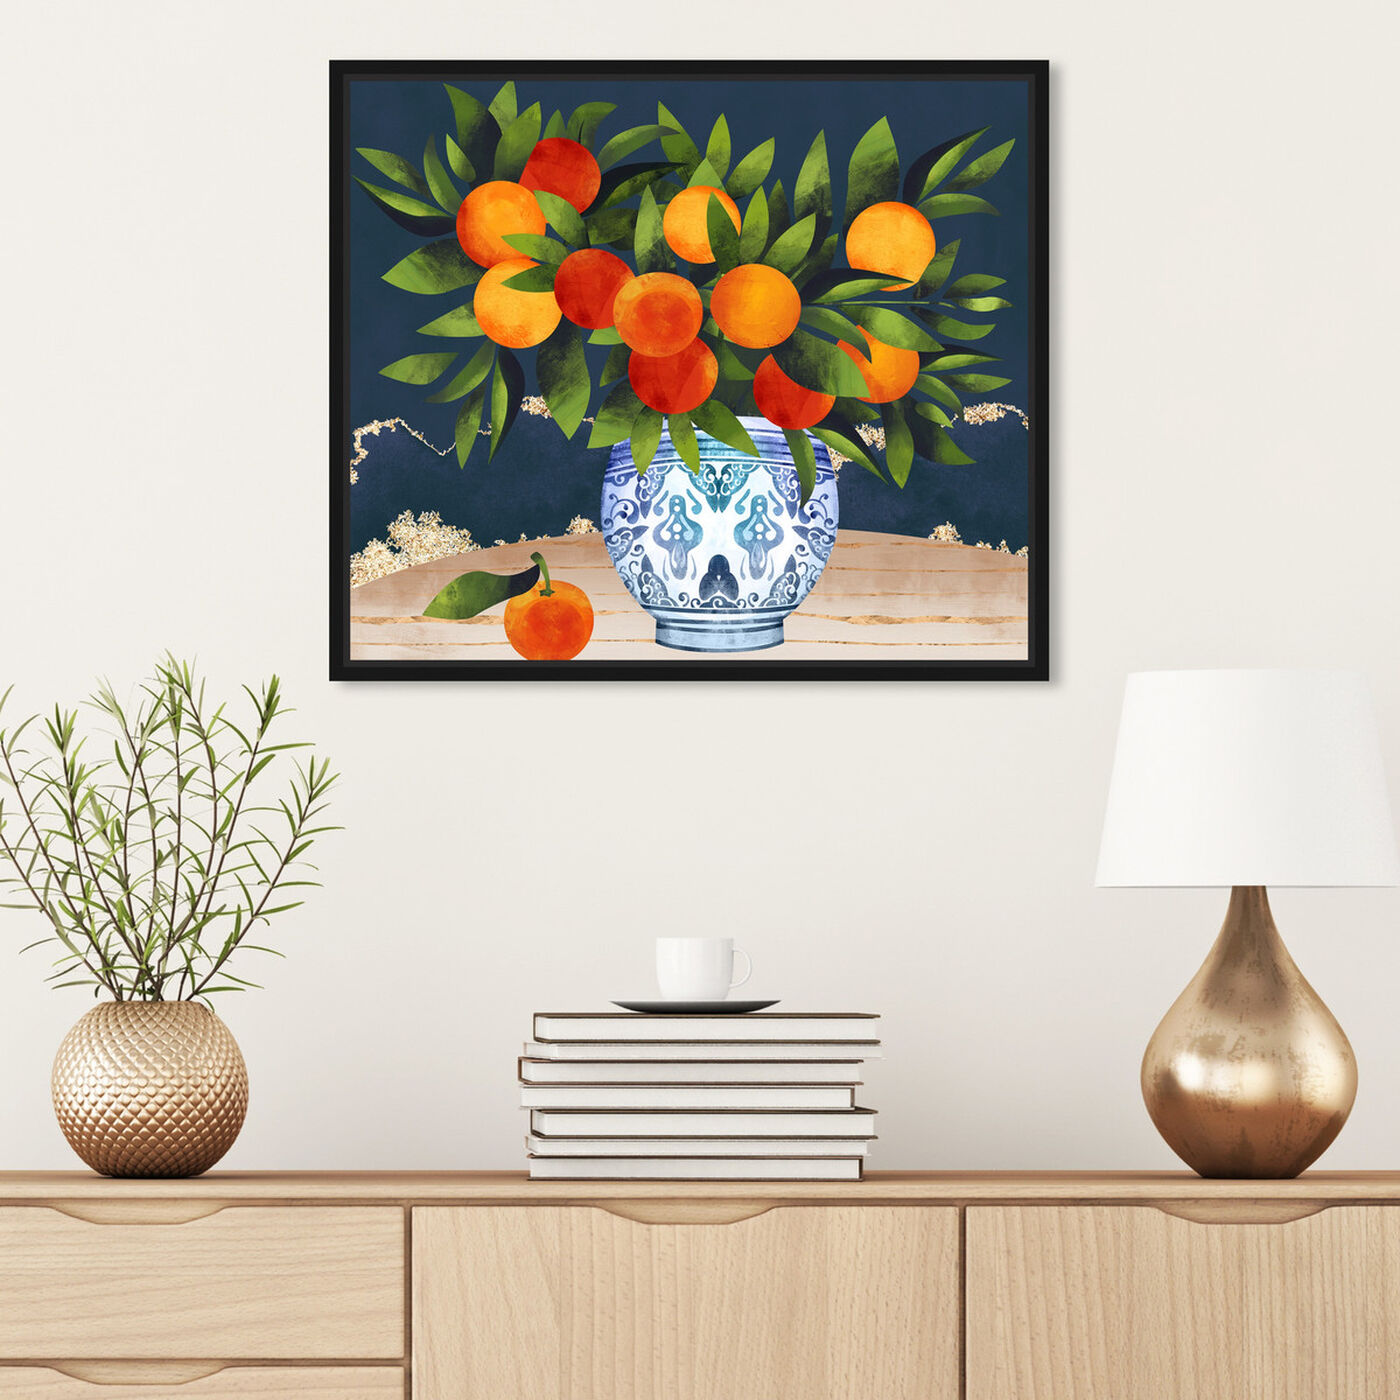 Hanging view of Fruits and Porcelain featuring food and cuisine and fruits art.